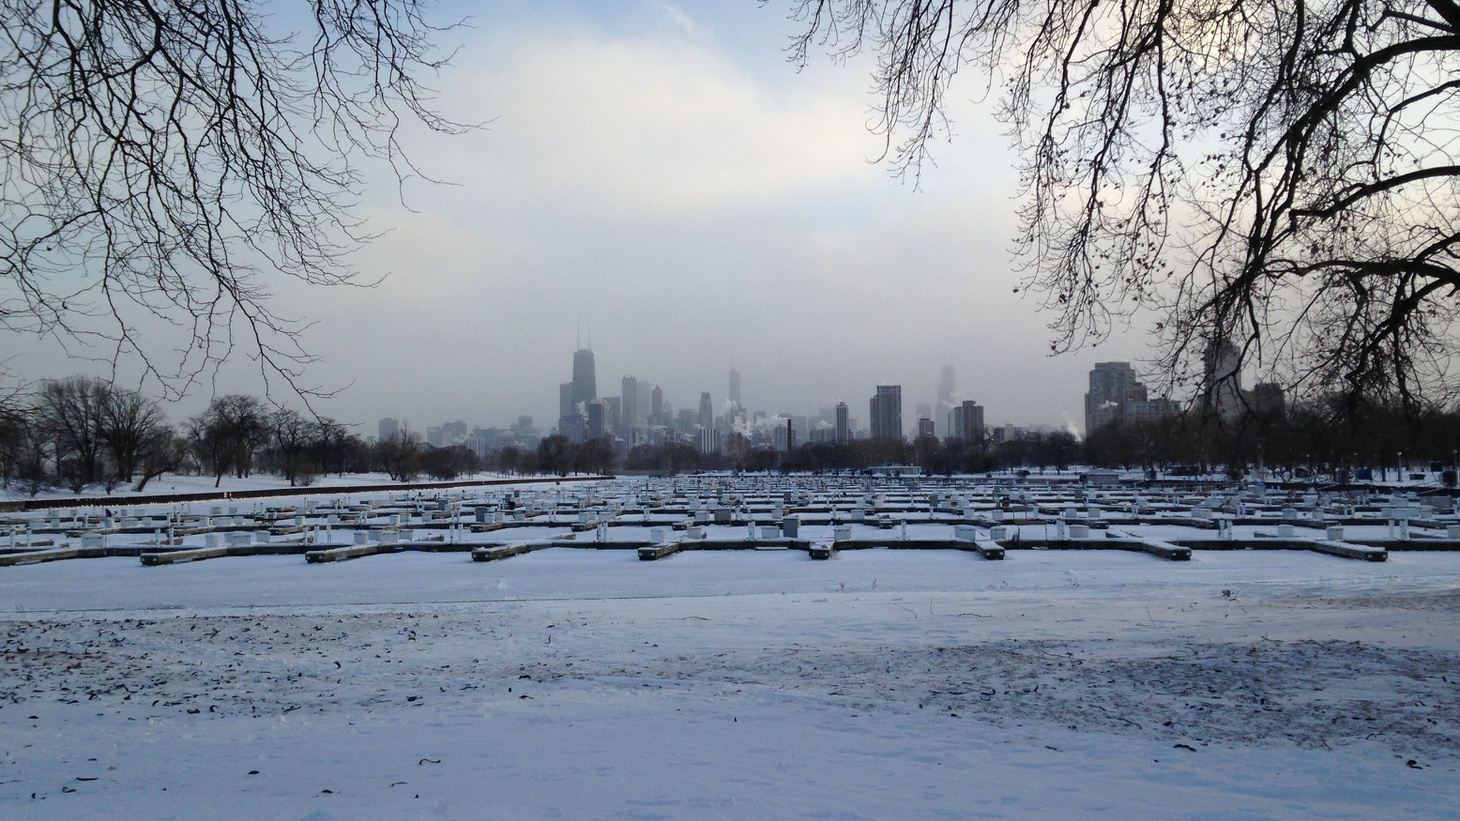 View of downtown Chicago from Diversey Harbor during 2014 Polar Vortex.